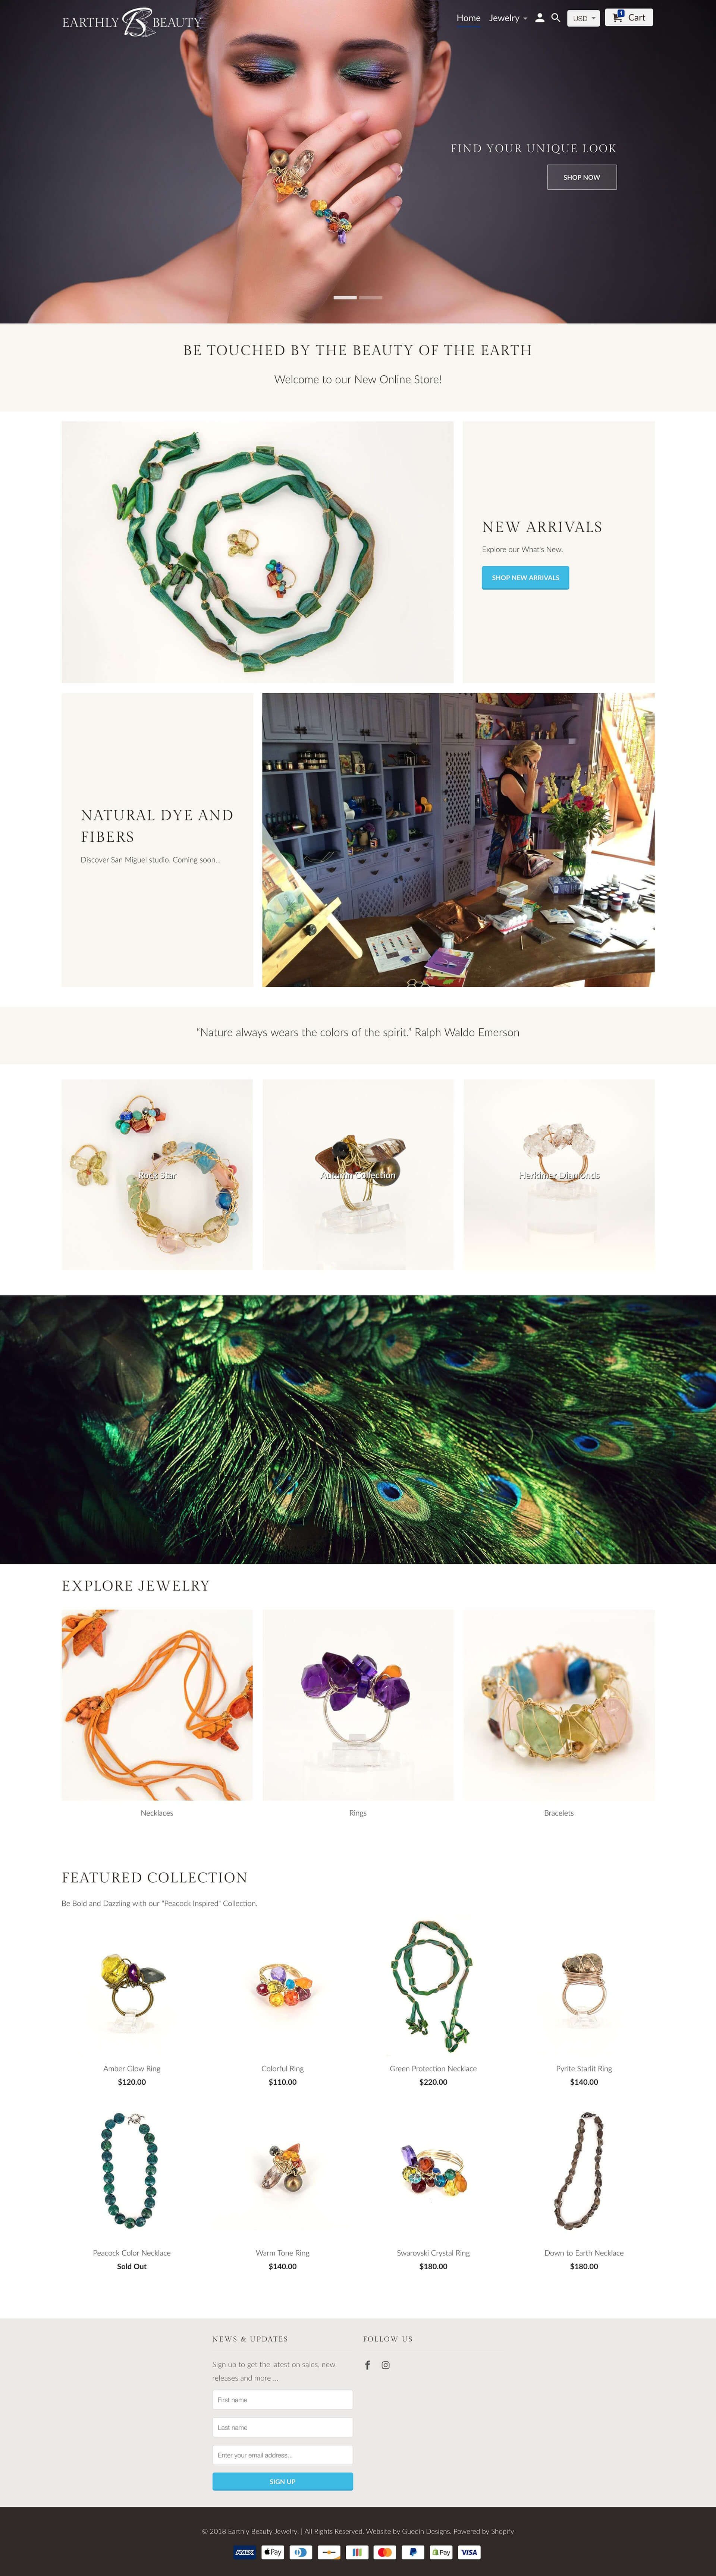 Earthly Beauty Jewelry ecommerce website by Guedin Designs